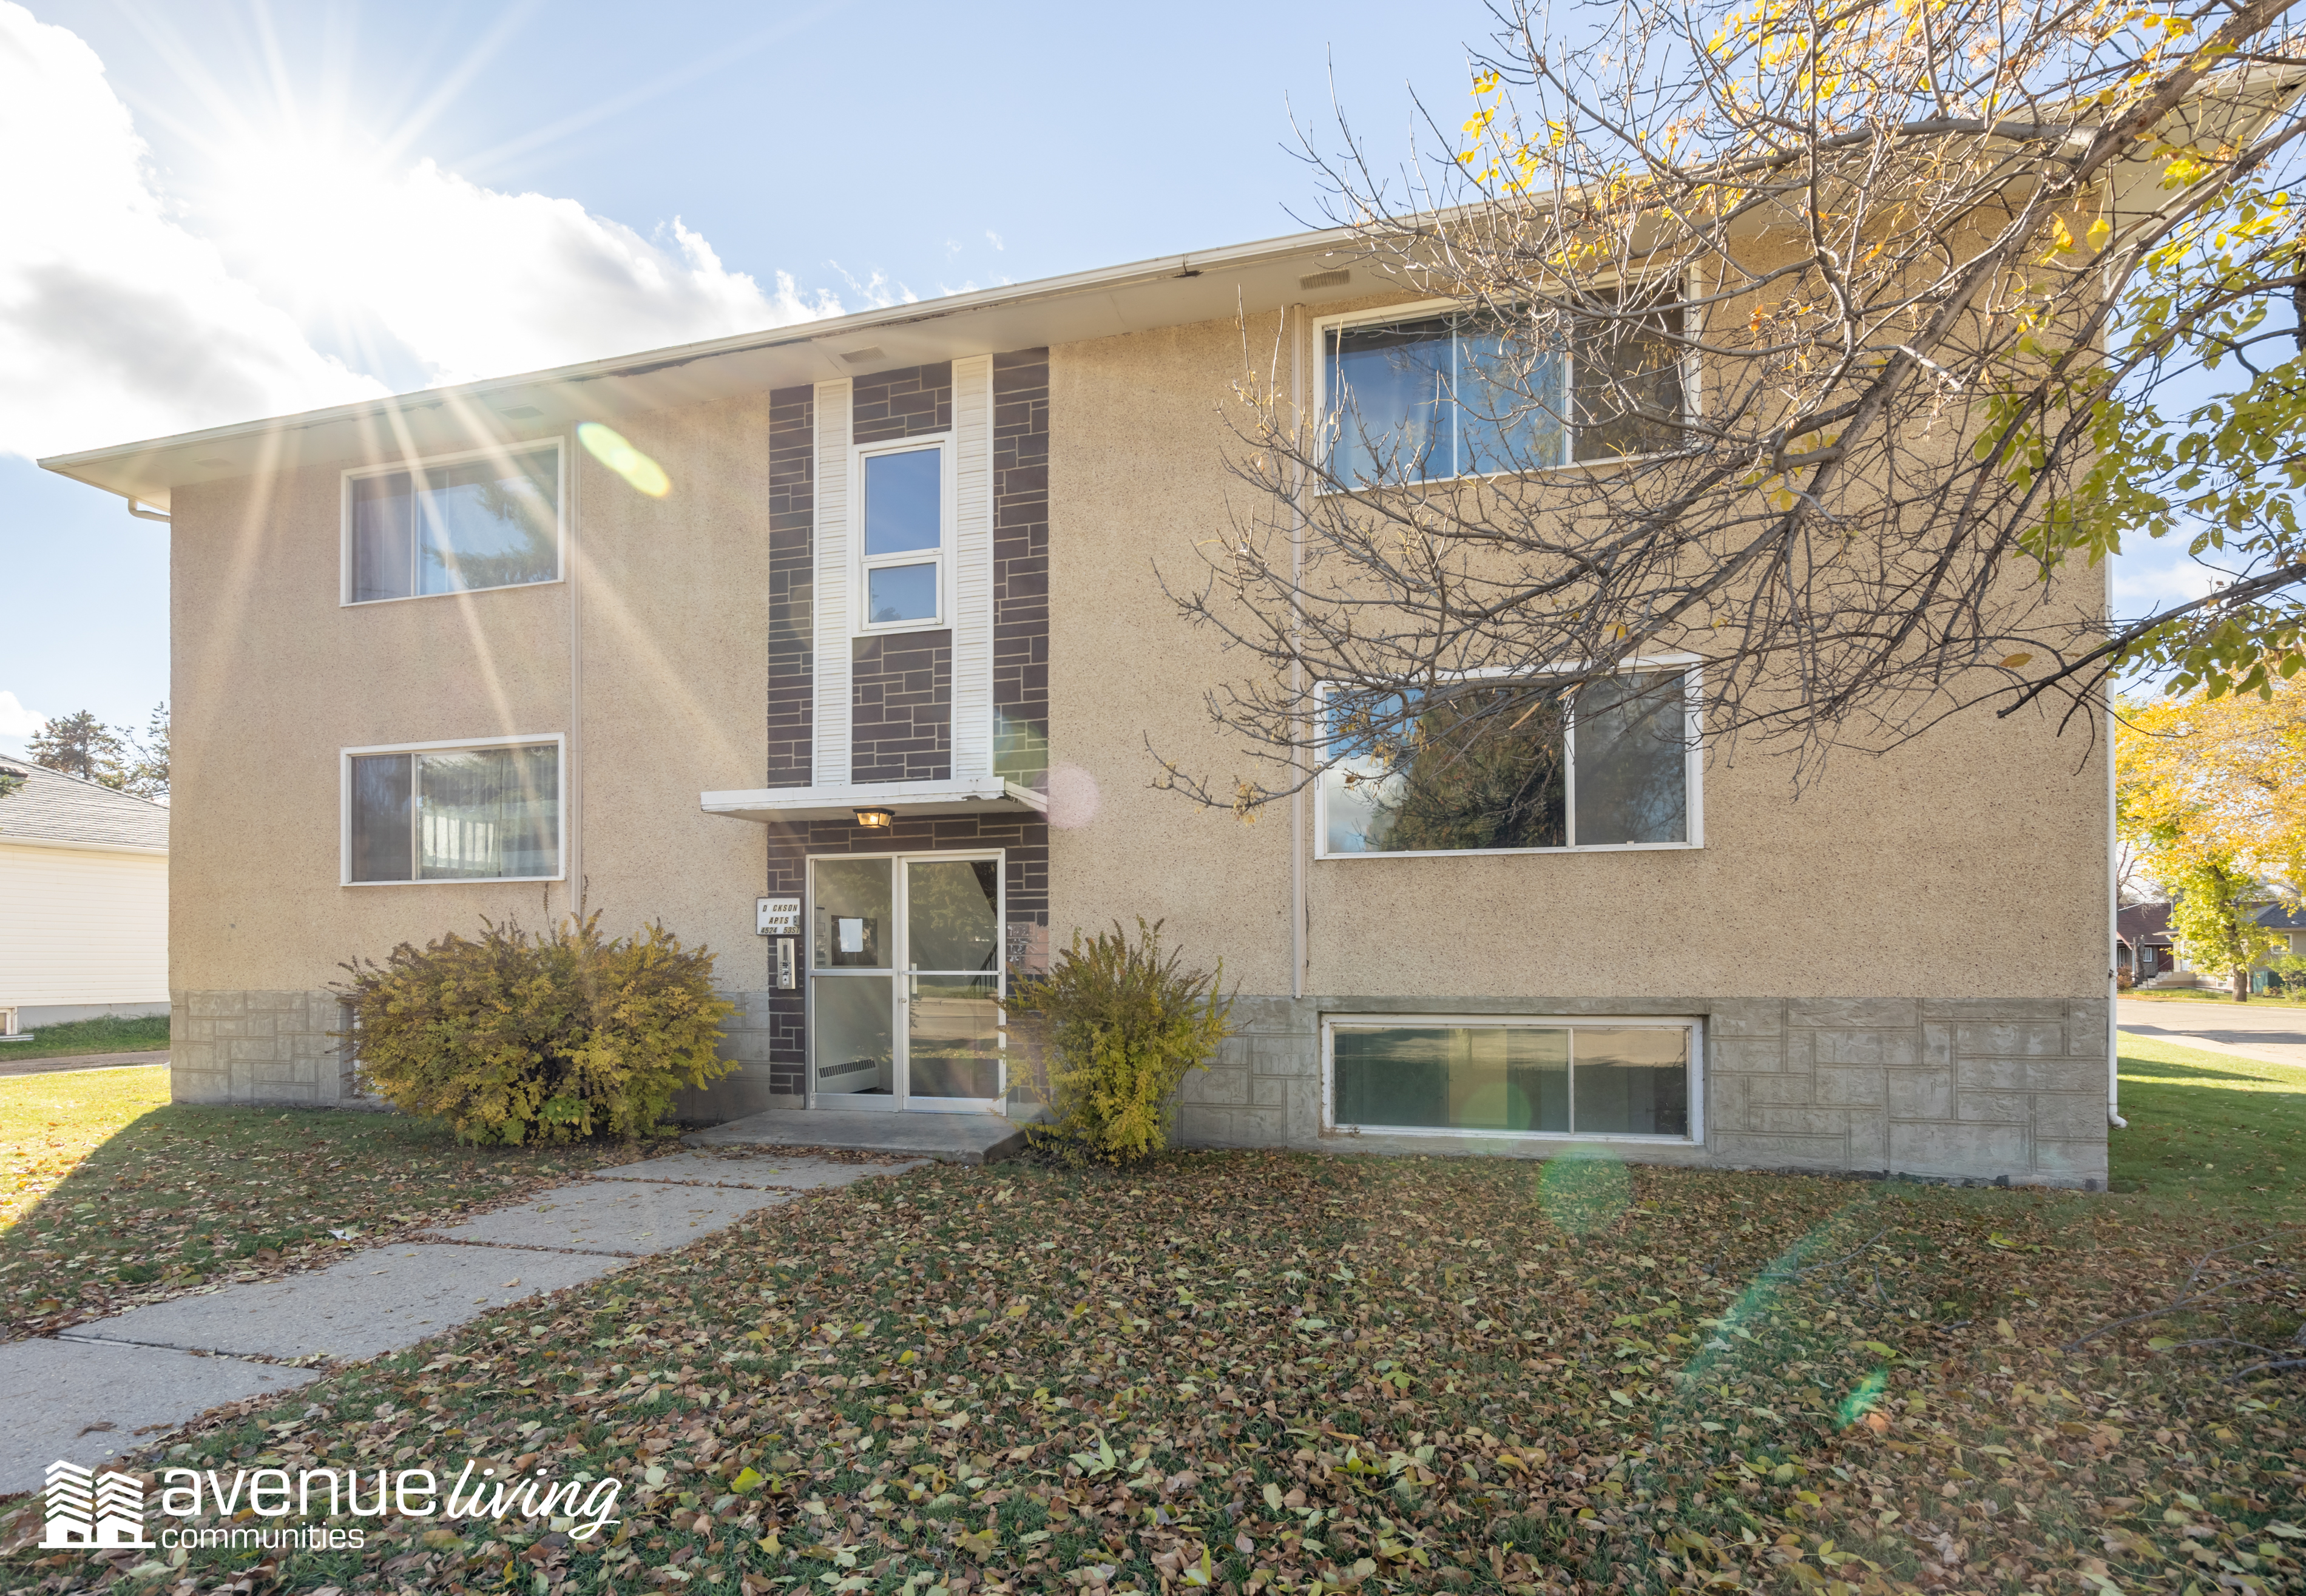 Exterieur Dickson Classic 1 Bedroom Residential For Rent In Wetaskiwin